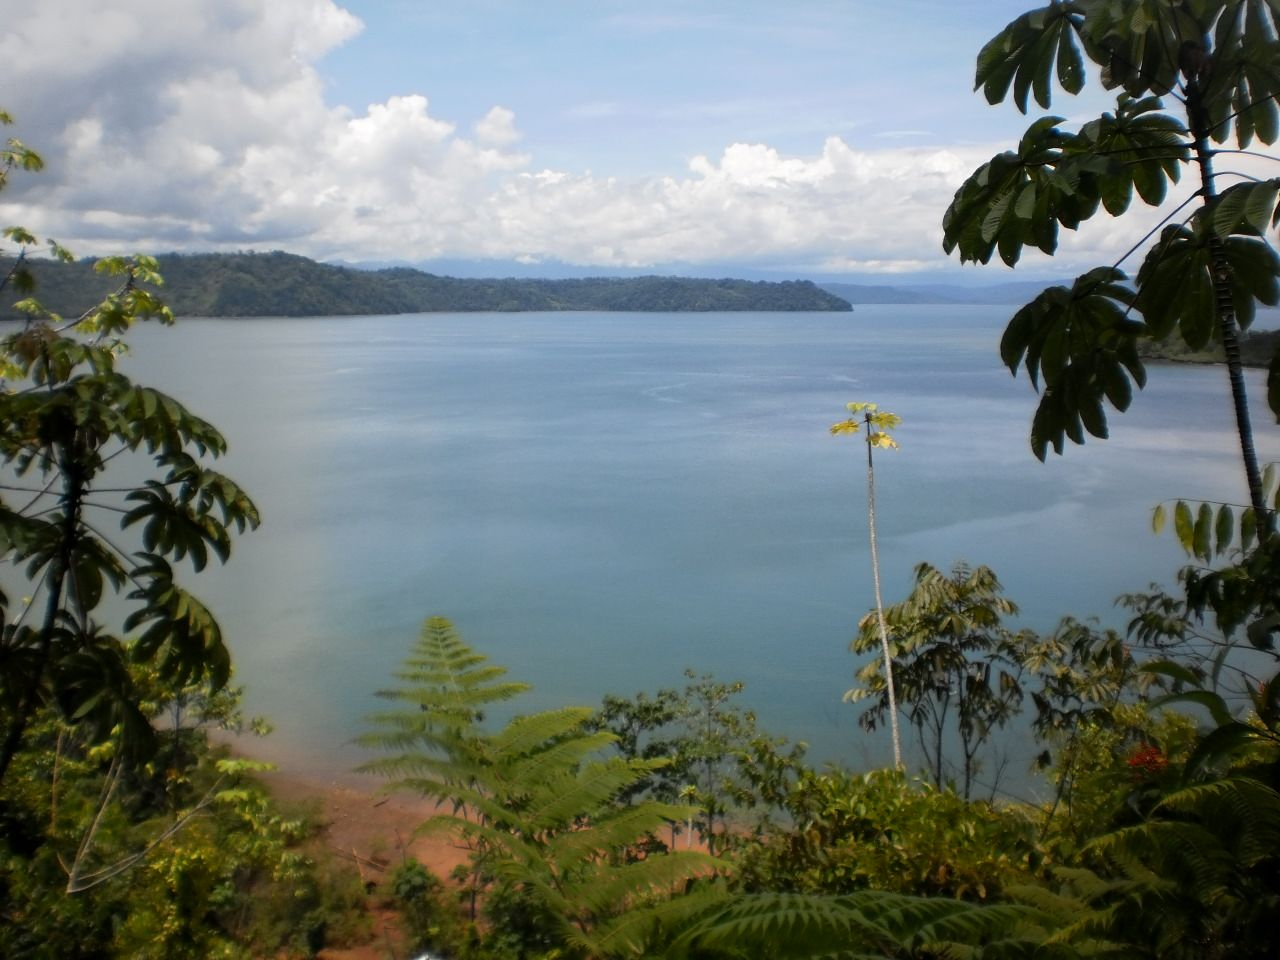 A peek-a-poo view along the trail in the rain forest of the Golfo Dulce! So breathe-taking.